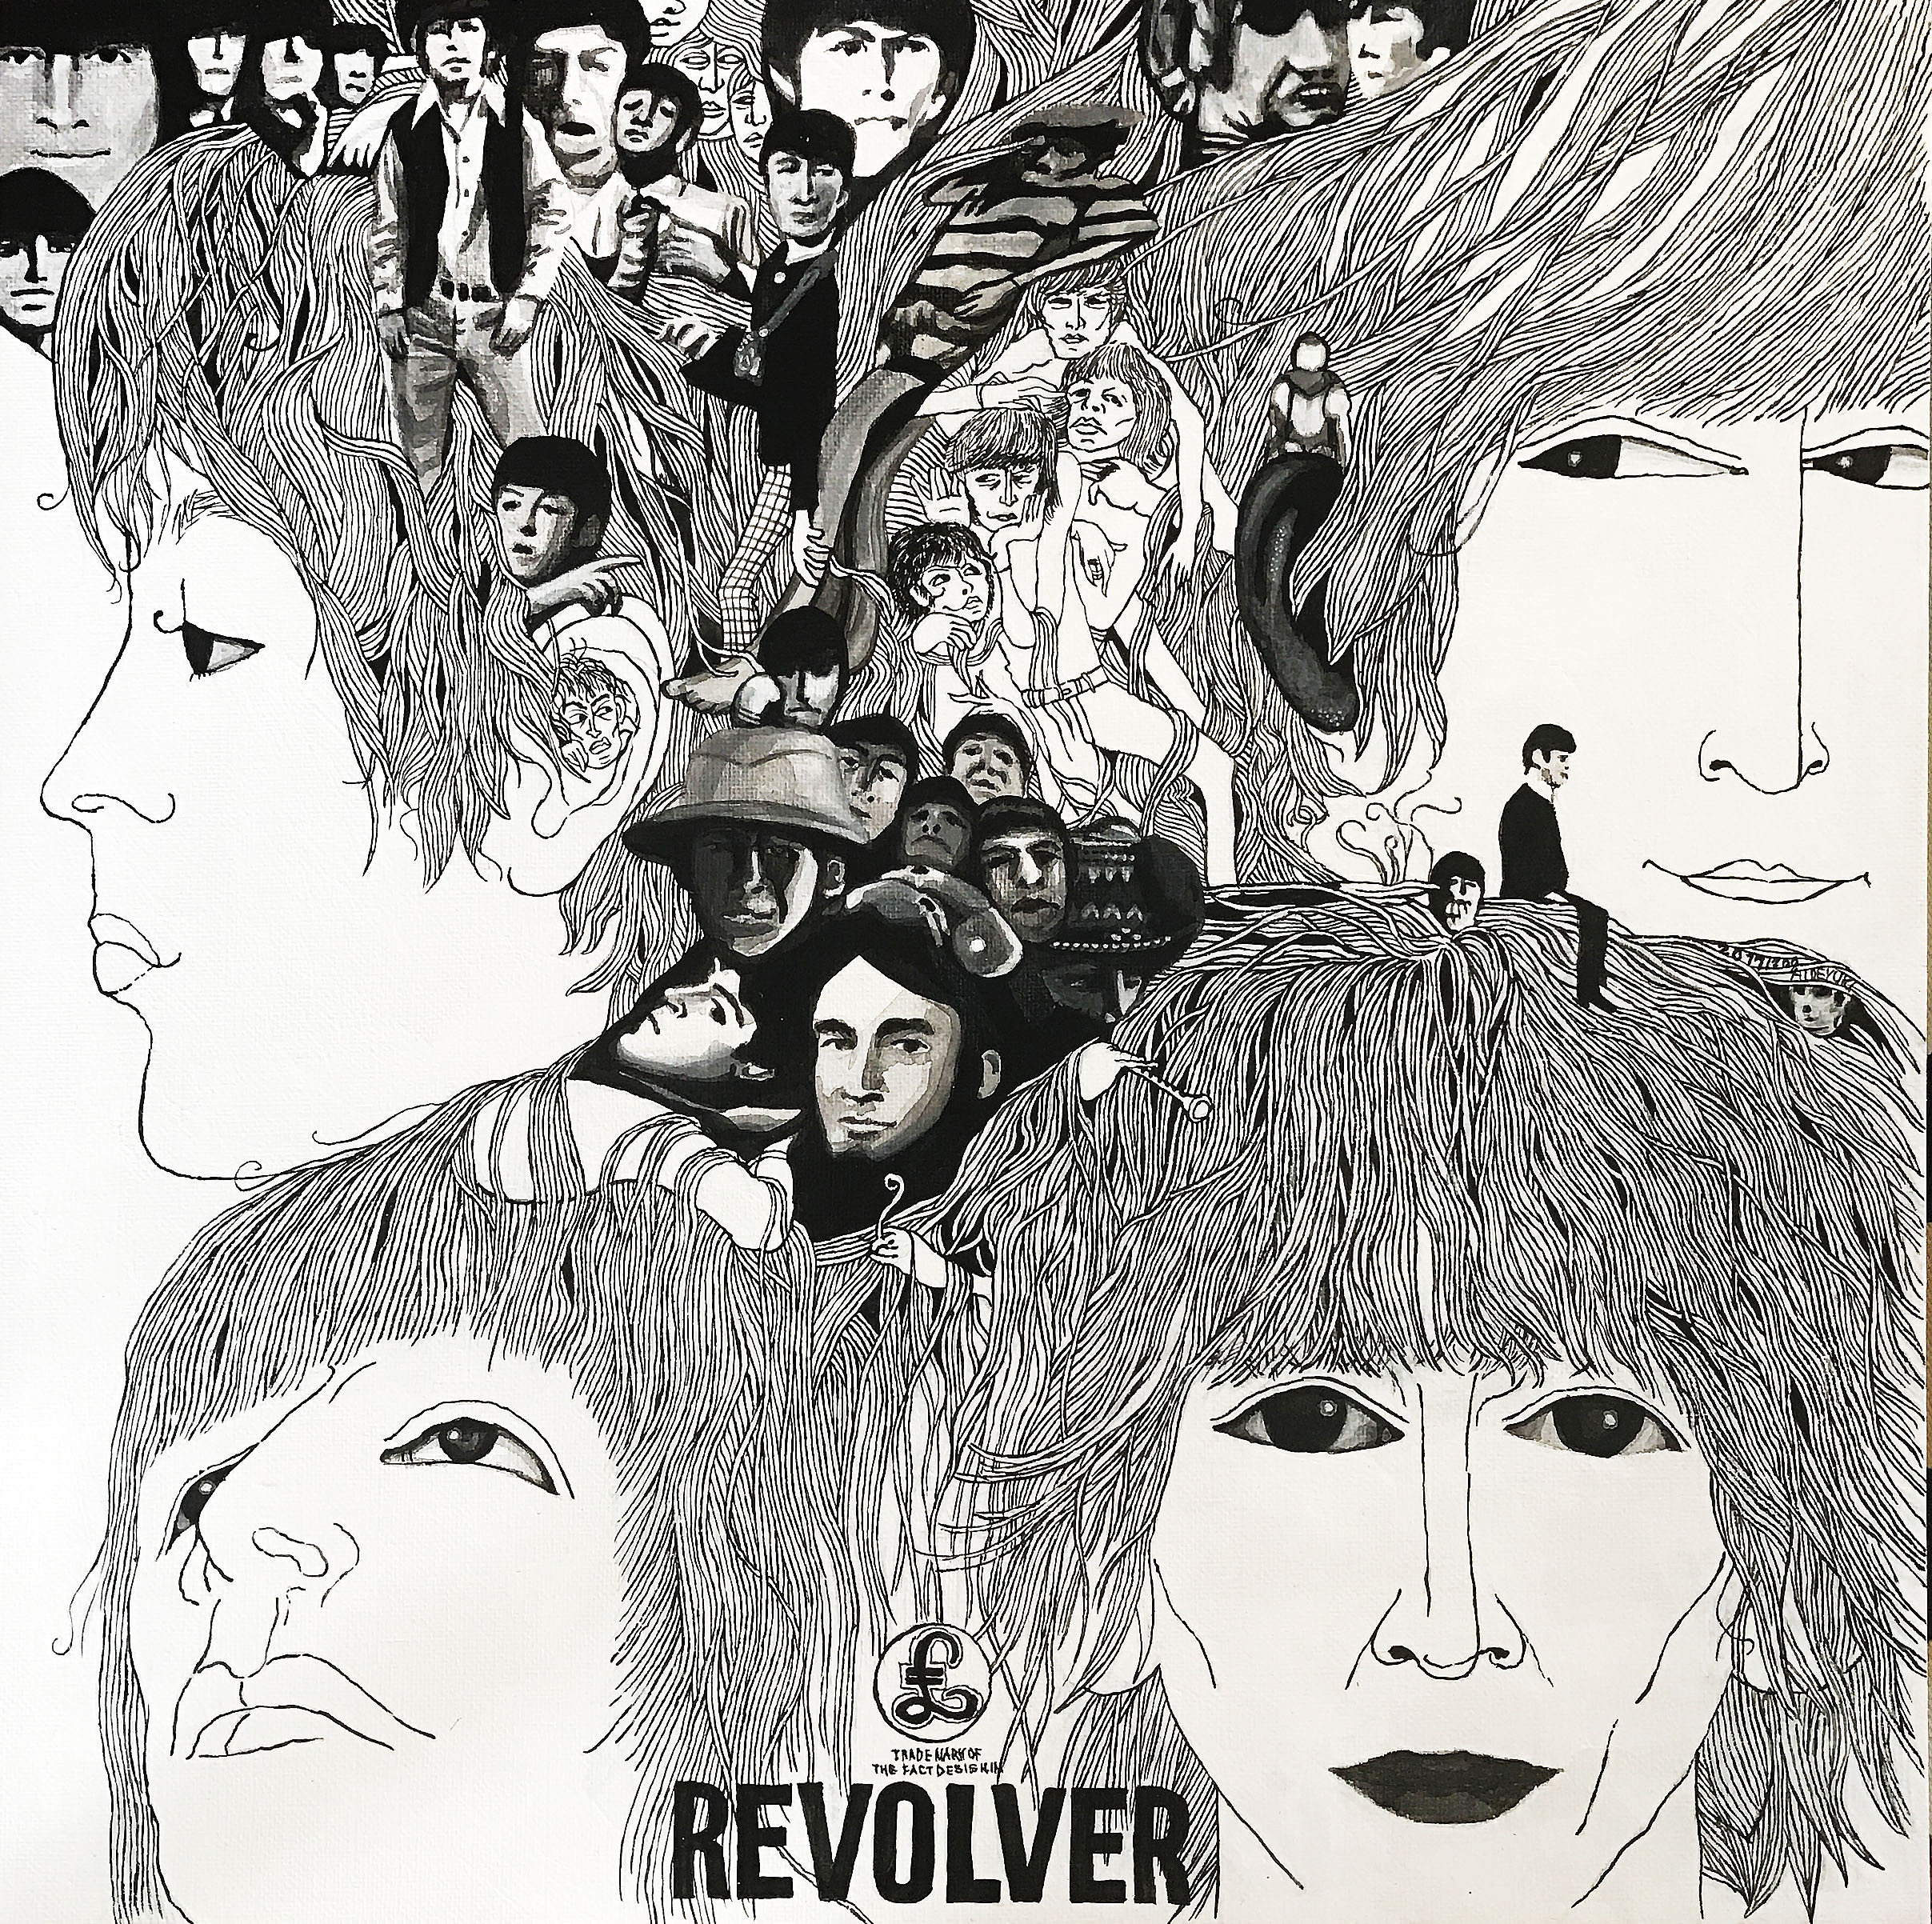 Revolver (Painting)